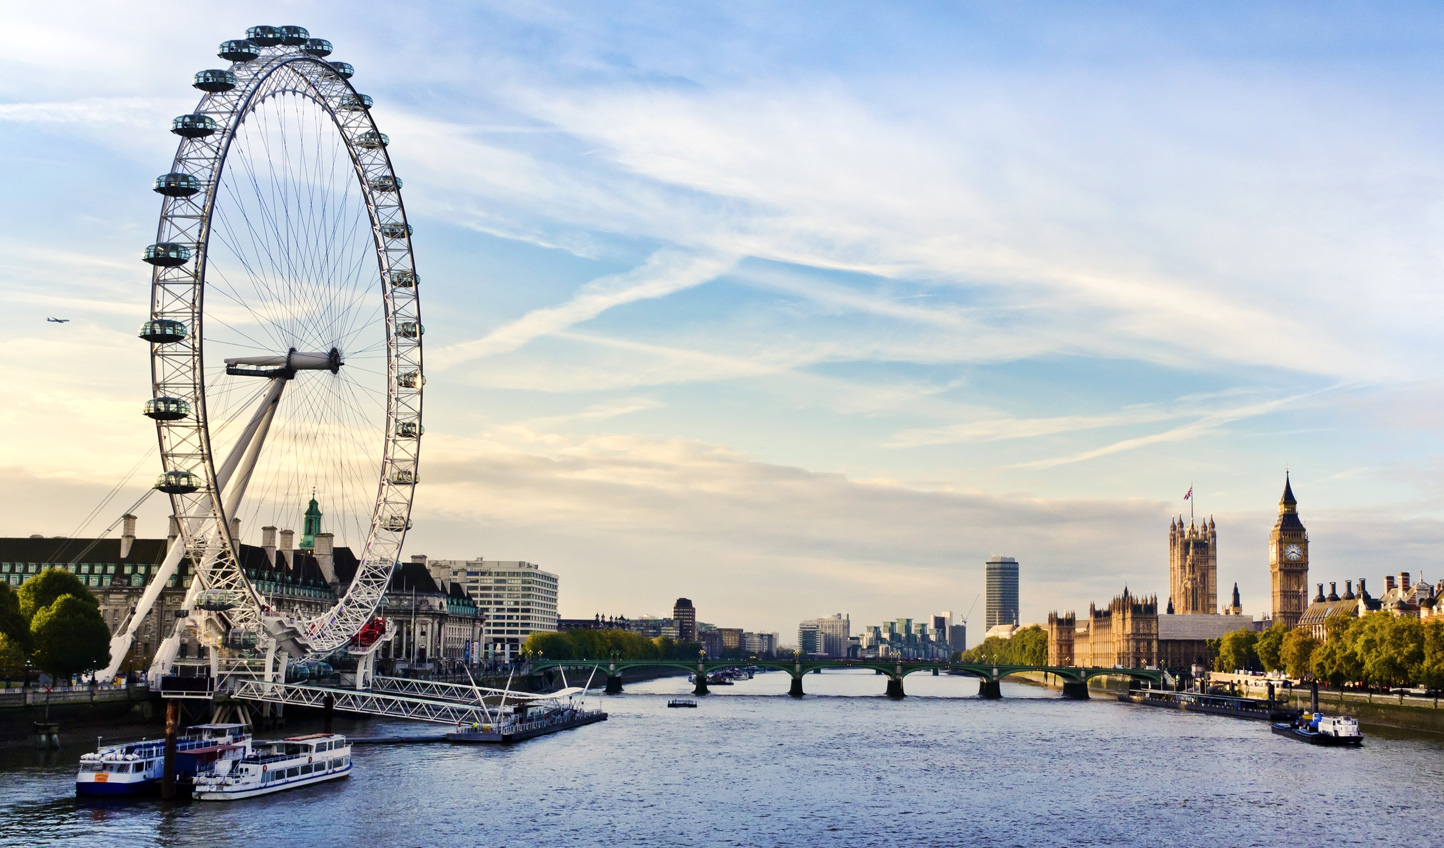 Kick start your tour of the British Isles in beautiful London